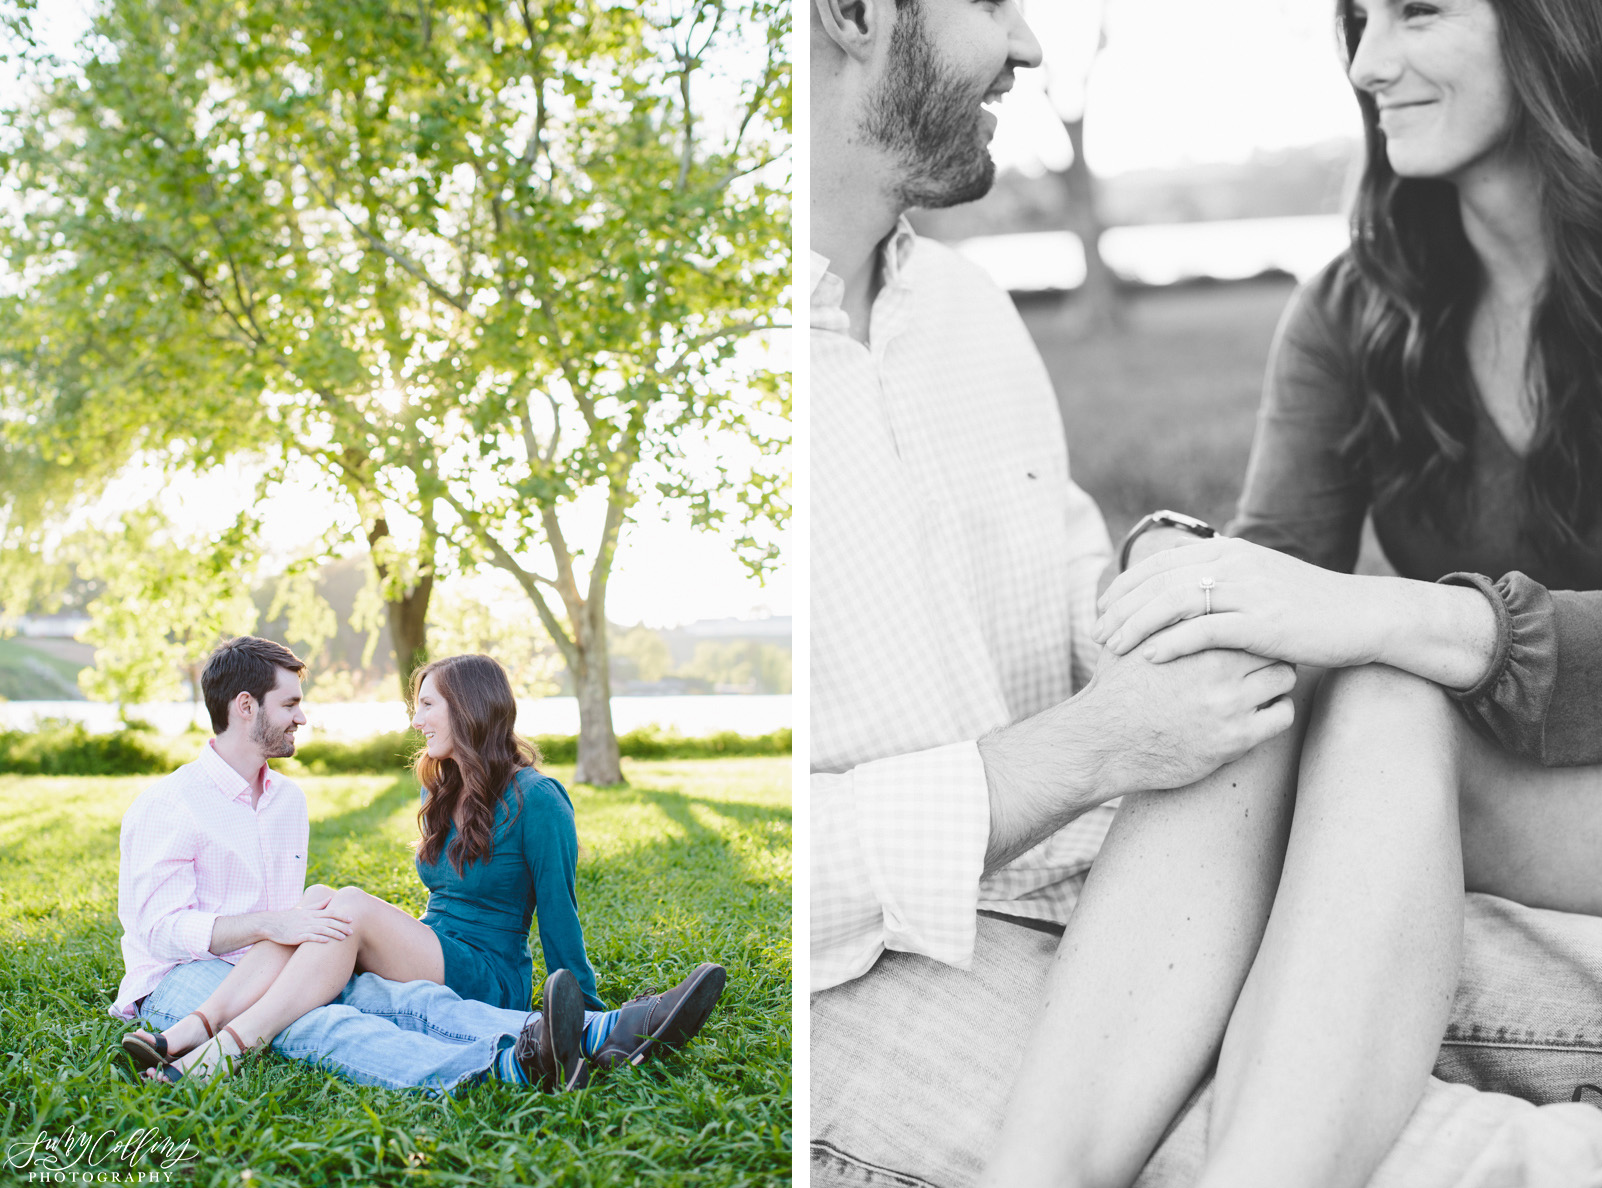 poses, couples, outdoor, Sequoyah hills, Knoxville, Tennessee, engagement, sunset, evening, love, vibrant, colorful, bright, creative, romantic, natural, light and airy, natural light, passion, inspiration, intimate, outfits, black and white